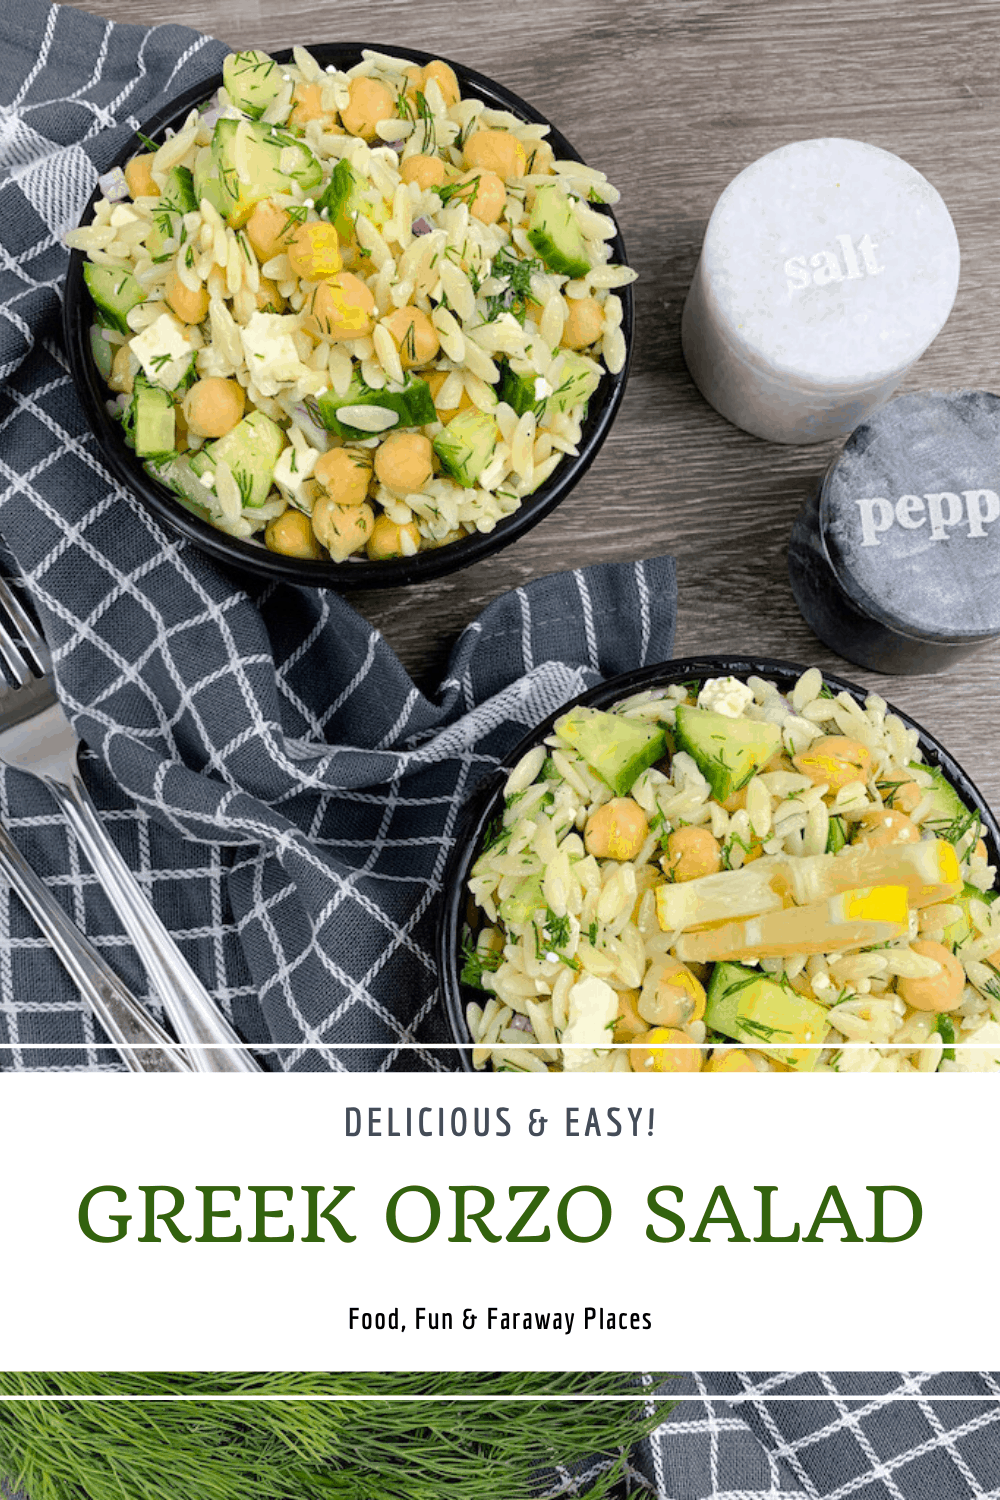 This Greek orzo salad is delicious and super easy to prepare. When you're wondering what to serve with a steak, baked chicken, or seafood, this is the perfect side dish.